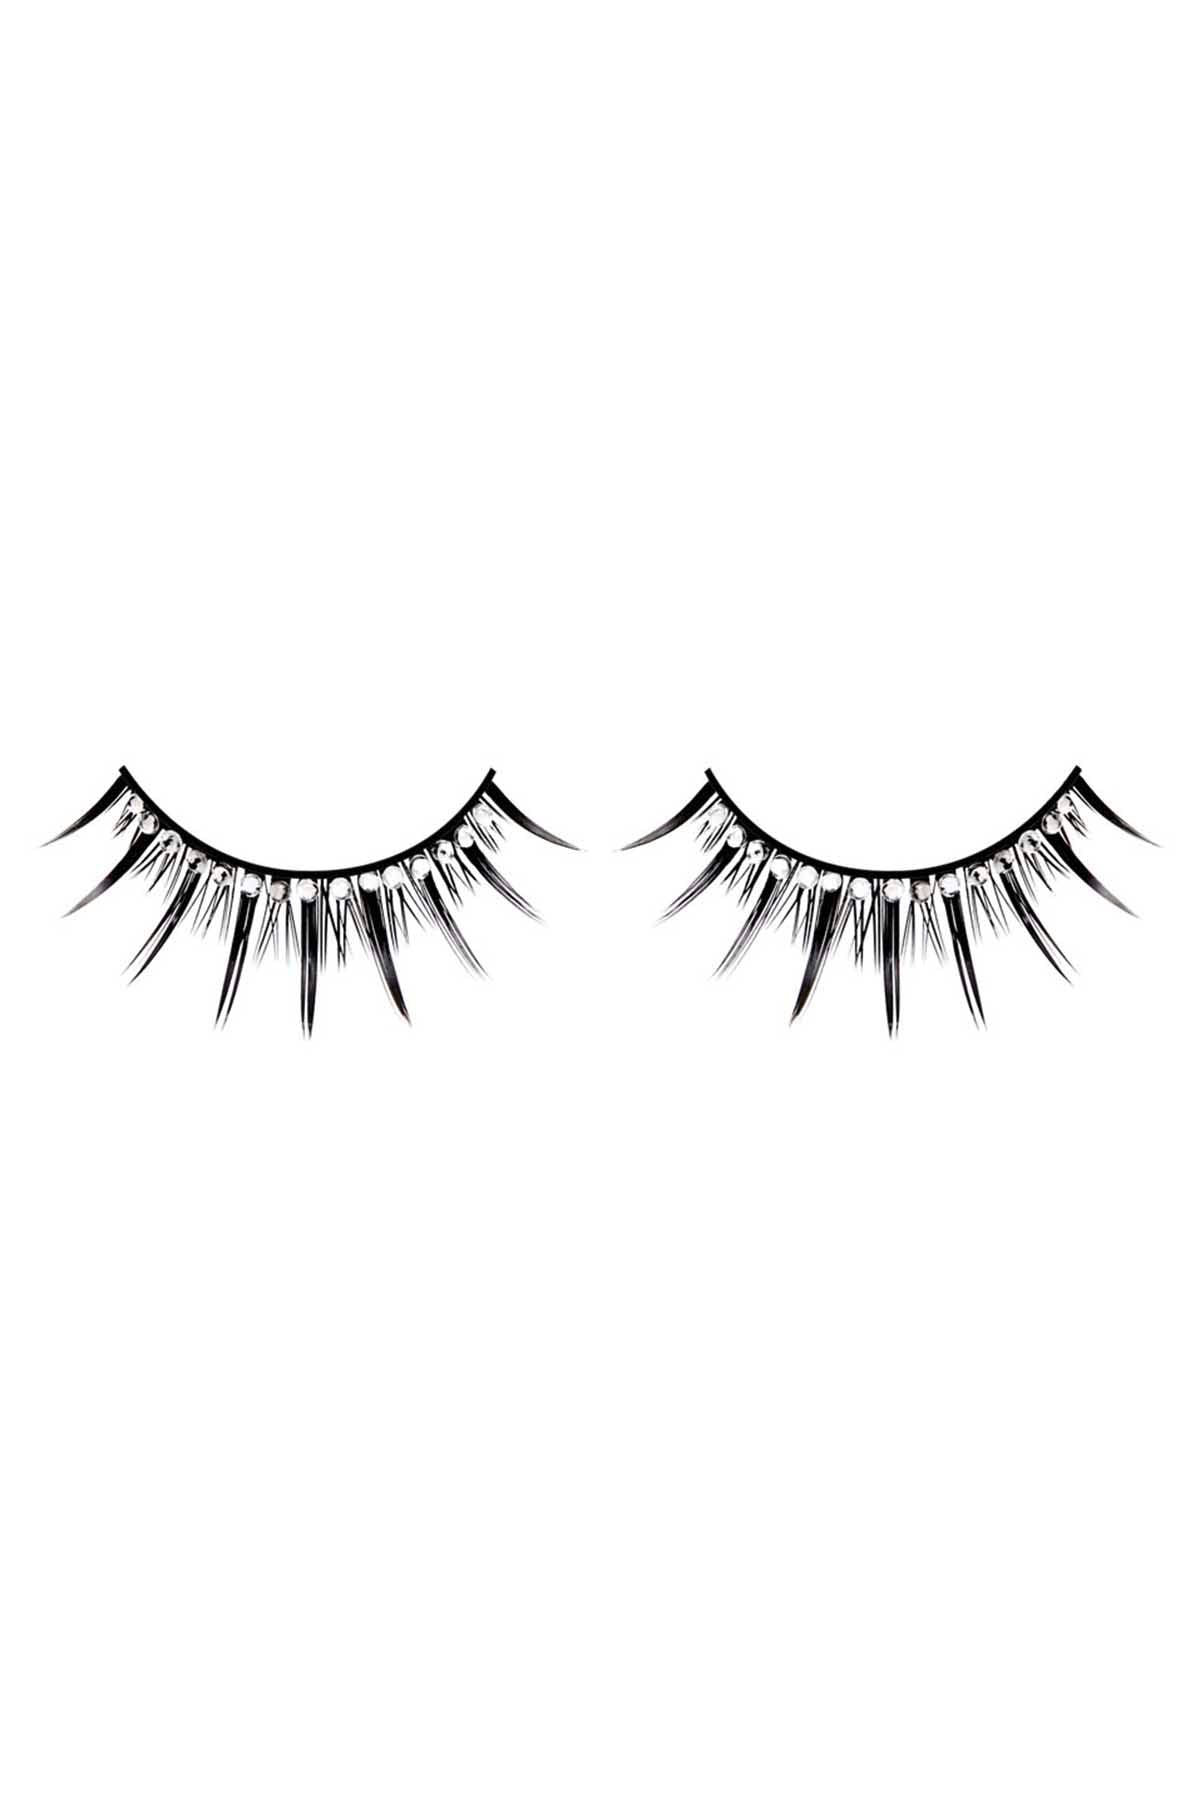 Baci Black Mini-Rhinestone Starlight Edition Eyelashes